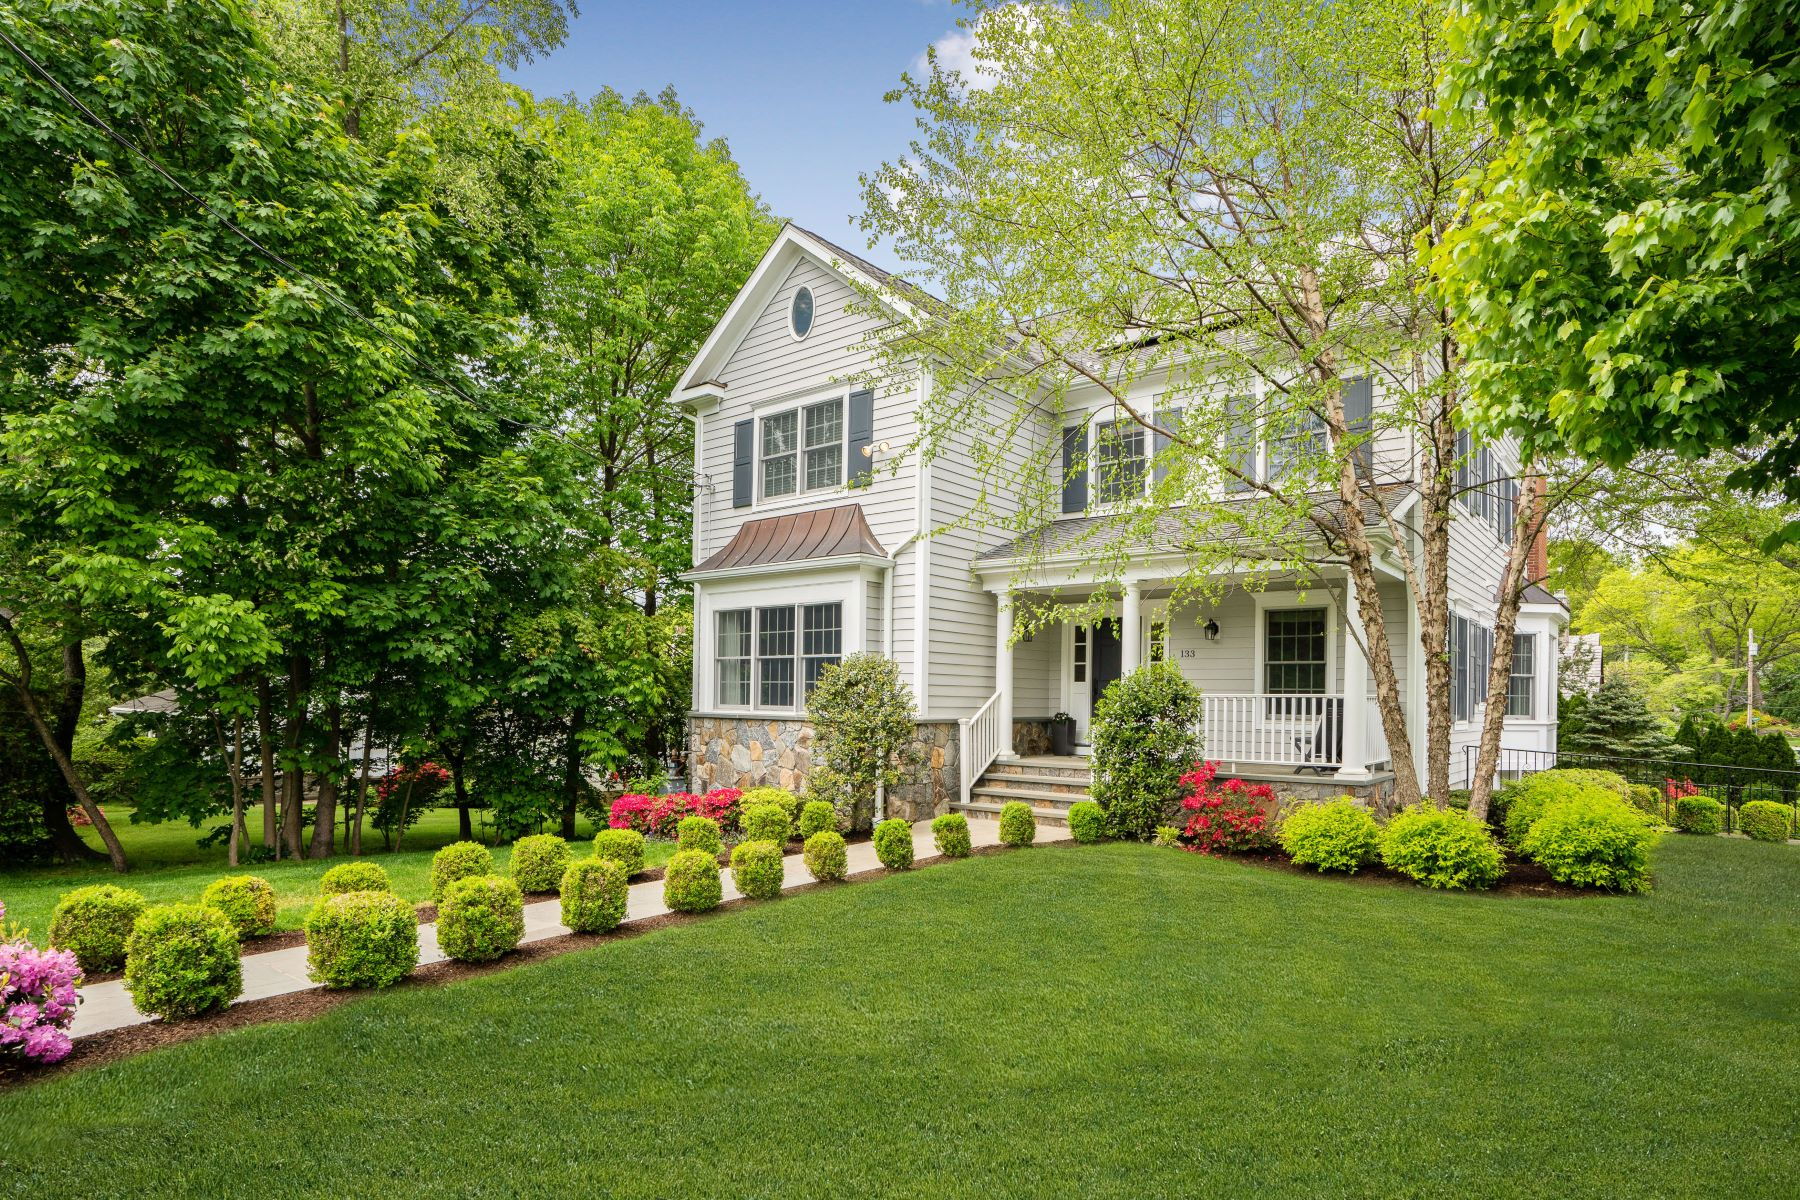 Single Family Homes for Sale at 133 East Garden Road 133 East Garden Rd Larchmont, New York 10538 United States